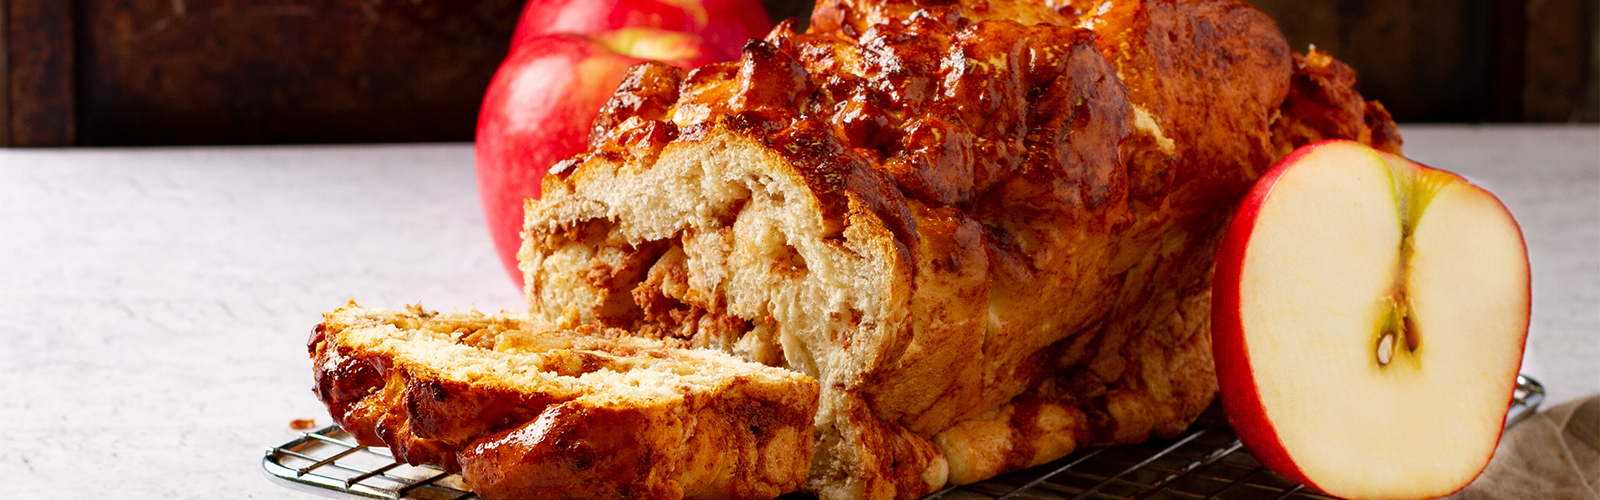 Apple Fritter French Toast Recipe